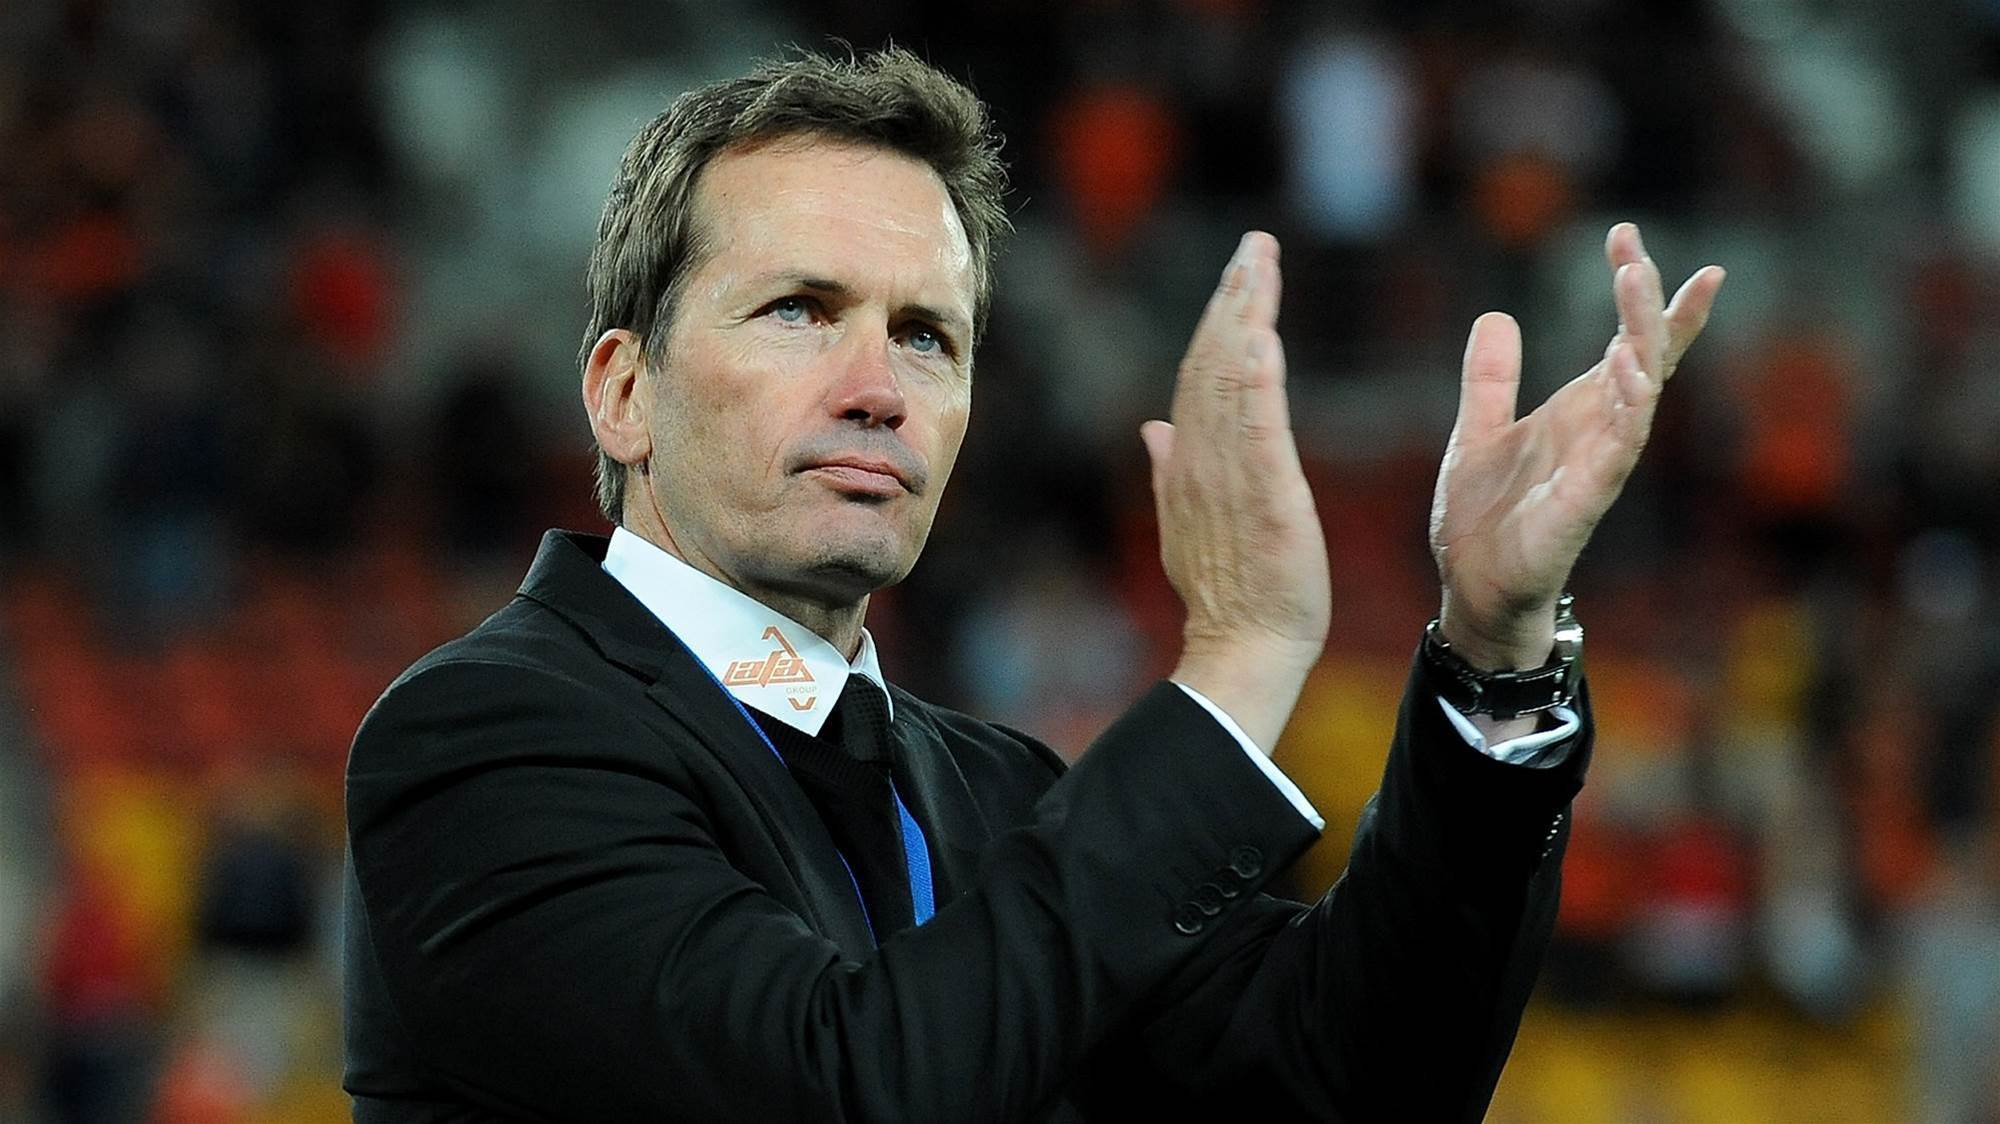 Mulvey's first big win: Mariners appoint all-star coaching staff